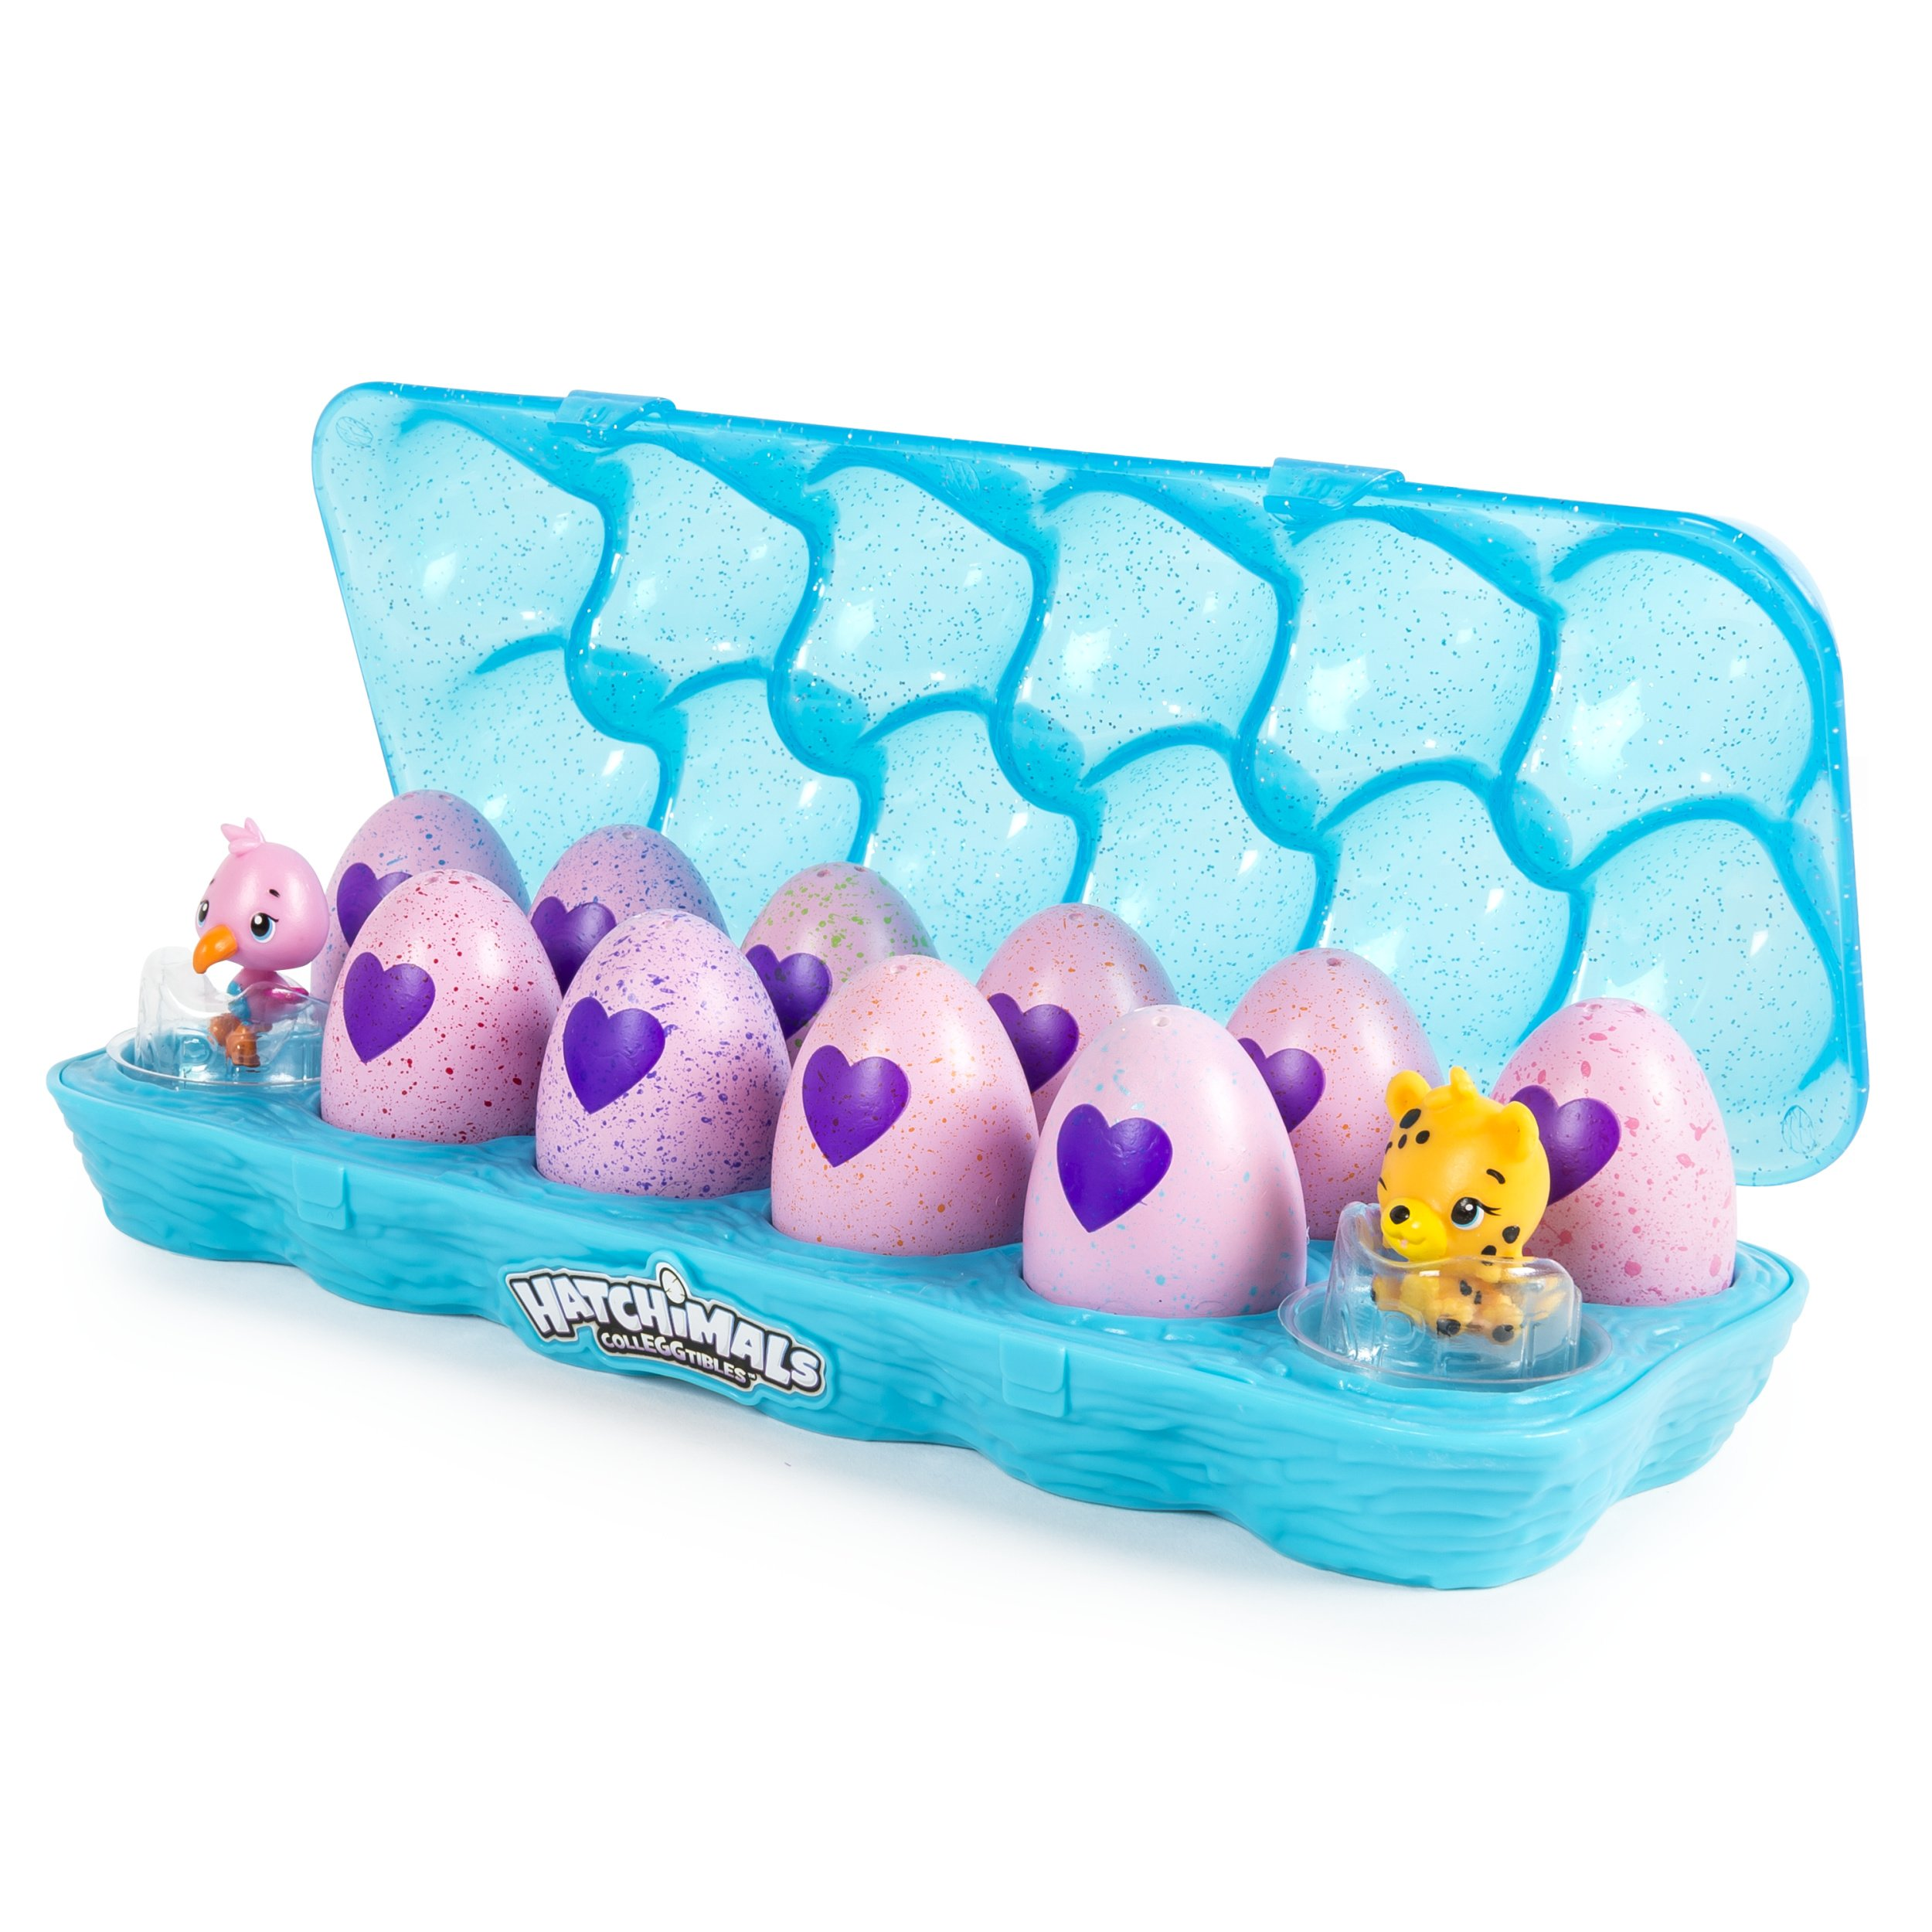 Hatchimals CollEGGtibles Season 2 - 12-Pack Egg Carton by Spin Master by Hatchimals (Image #6)